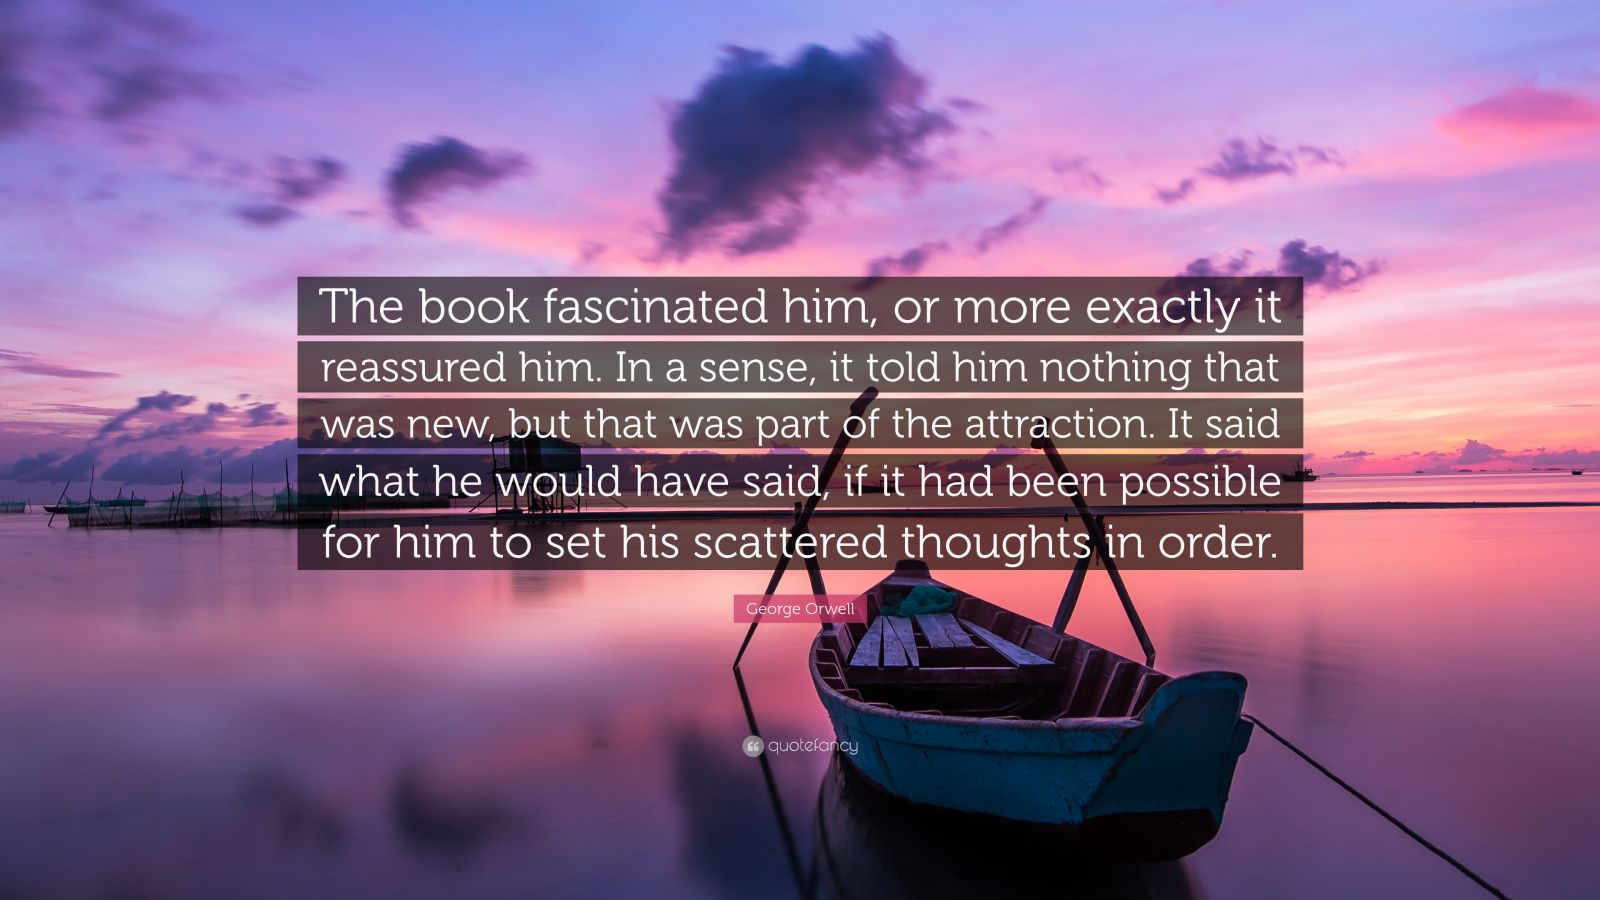 """George Orwell Quote: """"The book fascinated him, or more exactly it reassured him. In a sense, it told him nothing that was new, but that was part of the attraction. It said what he would have said, if it had been possible for him to set his scattered thoughts in order."""""""